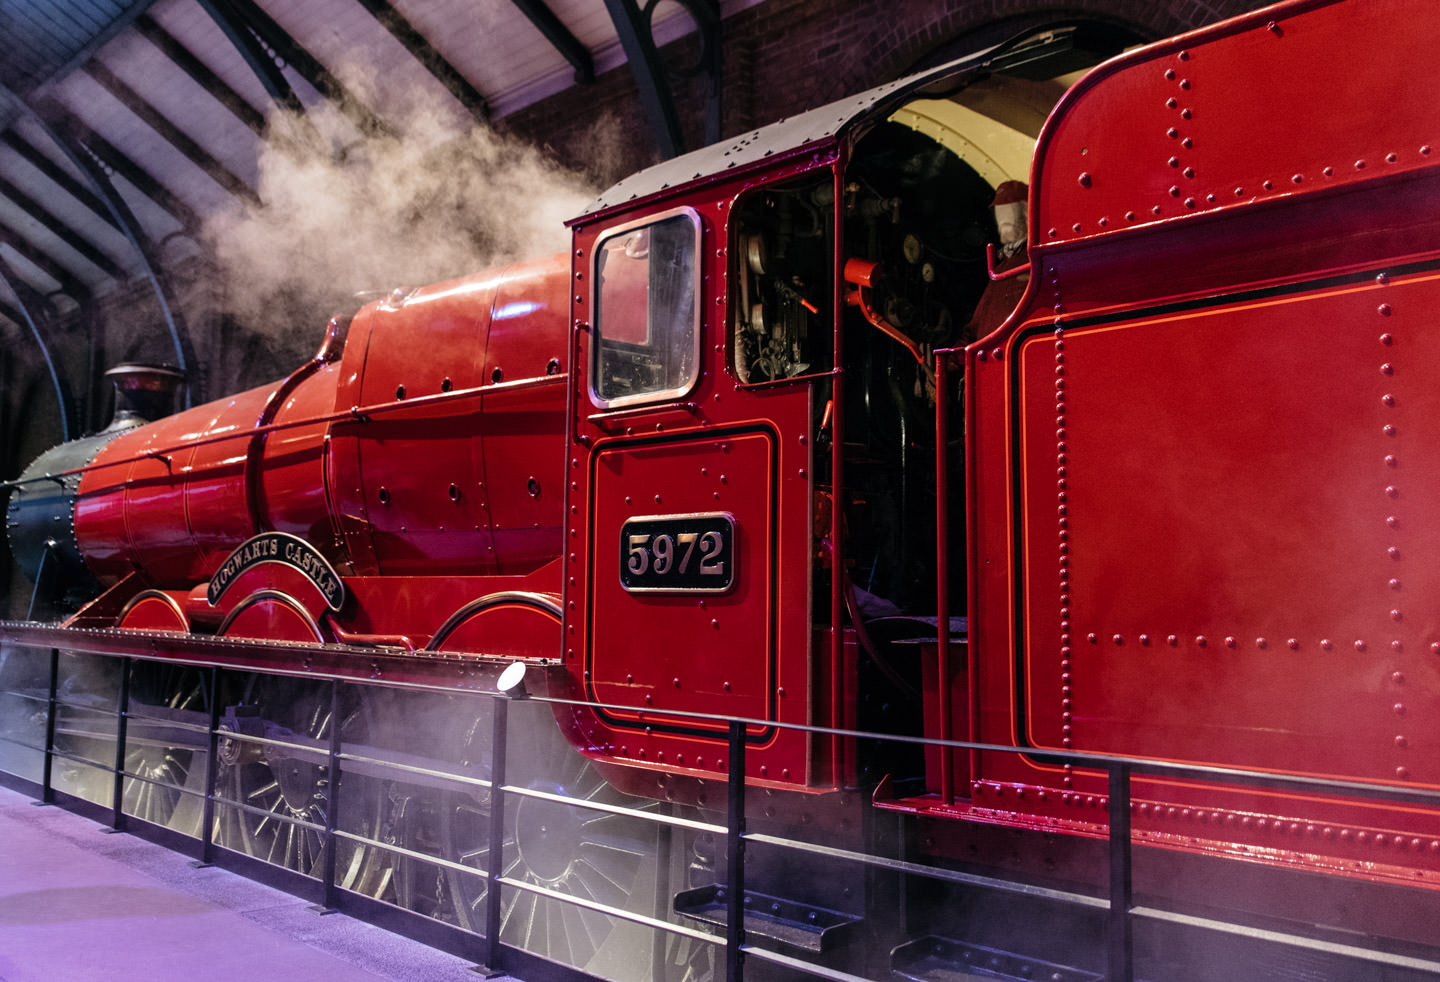 Blog-Mode-And-The-City-Lifestyle-Visite-Studios-Harry-Potter-Londres-21